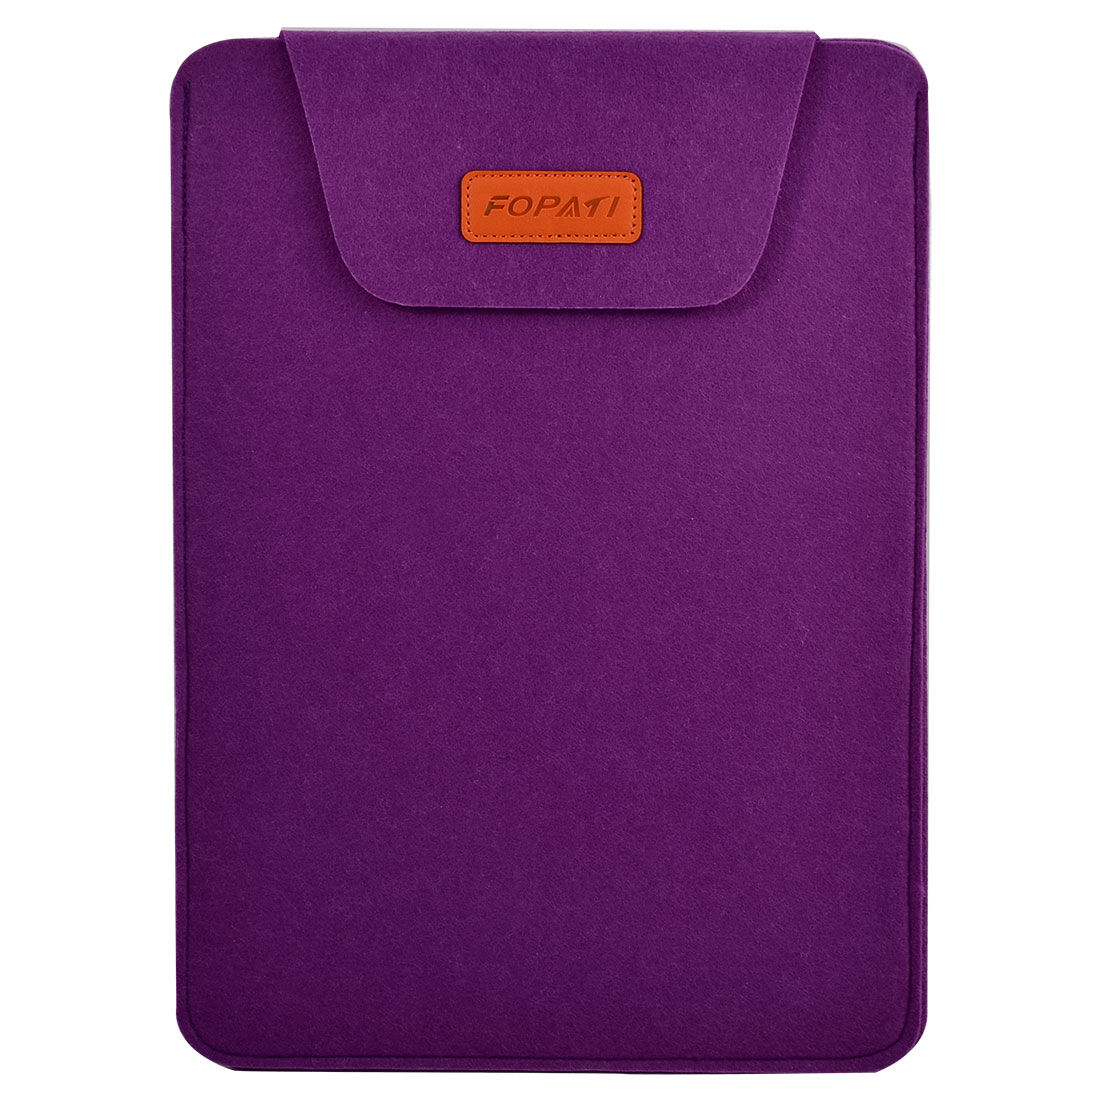 Home Computer Wool Felt Universal Protective Skin Notebook Sleeve Case Purple for 15.6 Inch Laptop